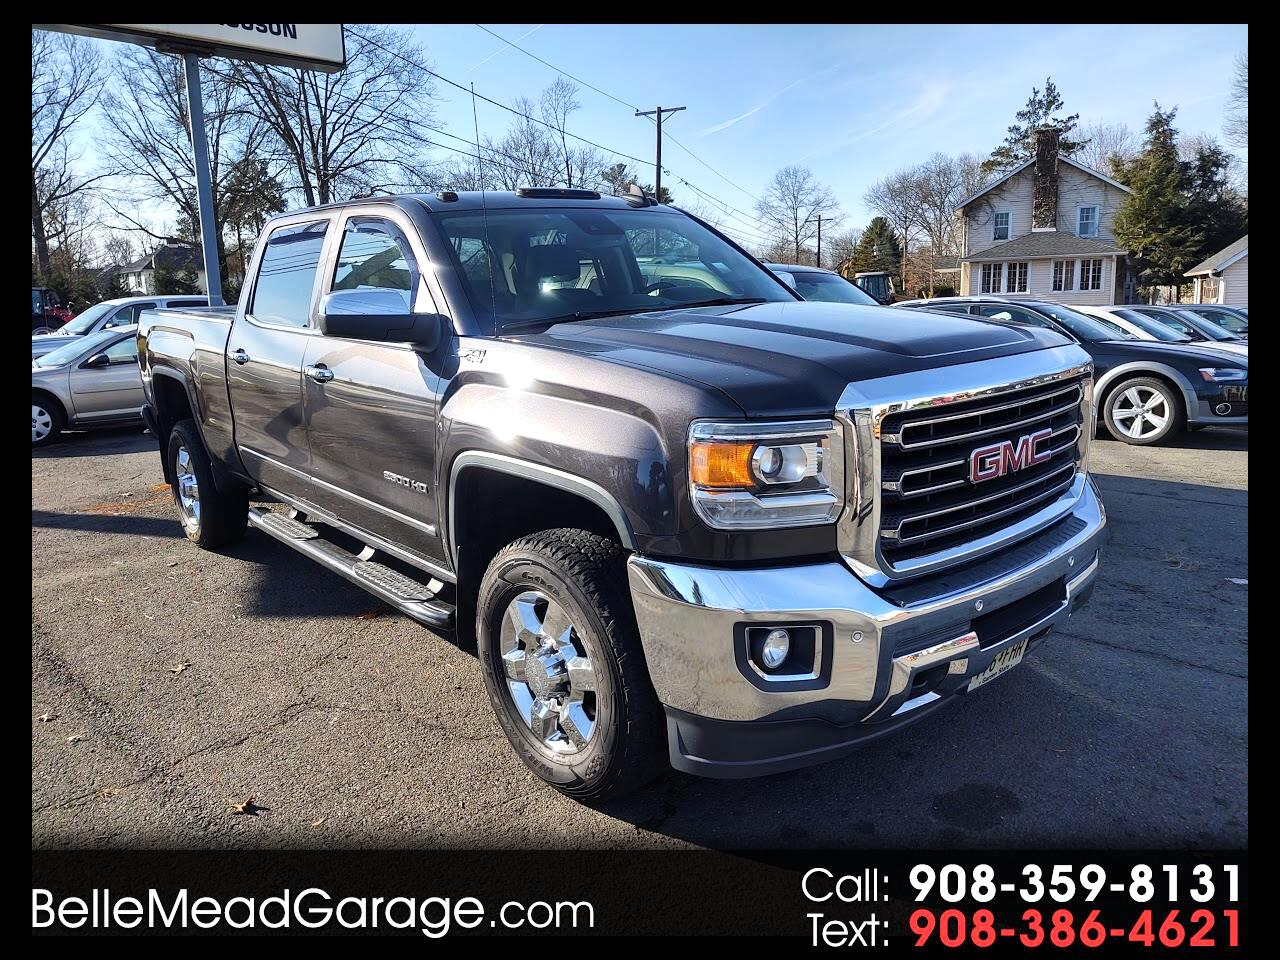 "GMC Sierra 2500HD available WiFi 4WD Crew Cab 153.7"" SLT 2015"